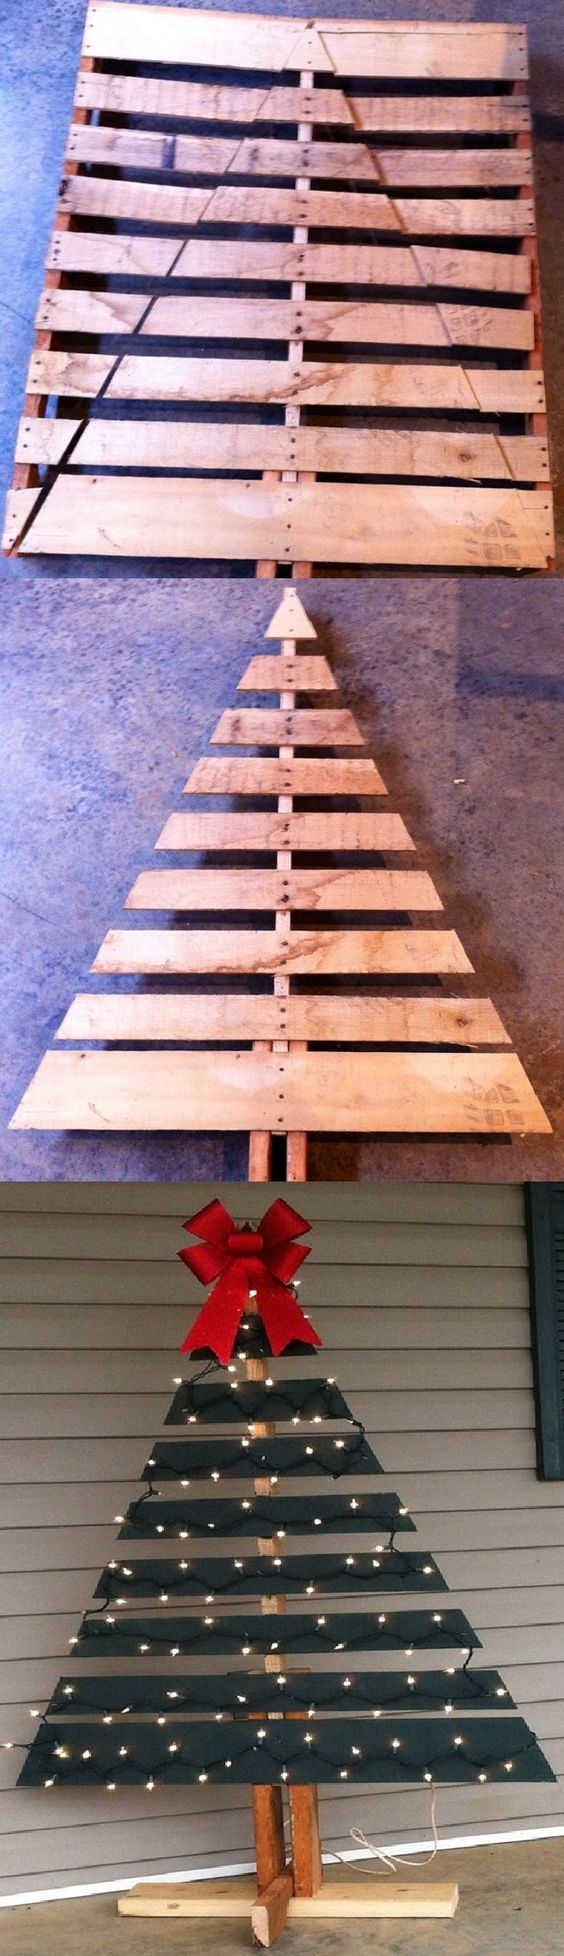 DIY Christmas Tree for your front porch out of a pallet!: